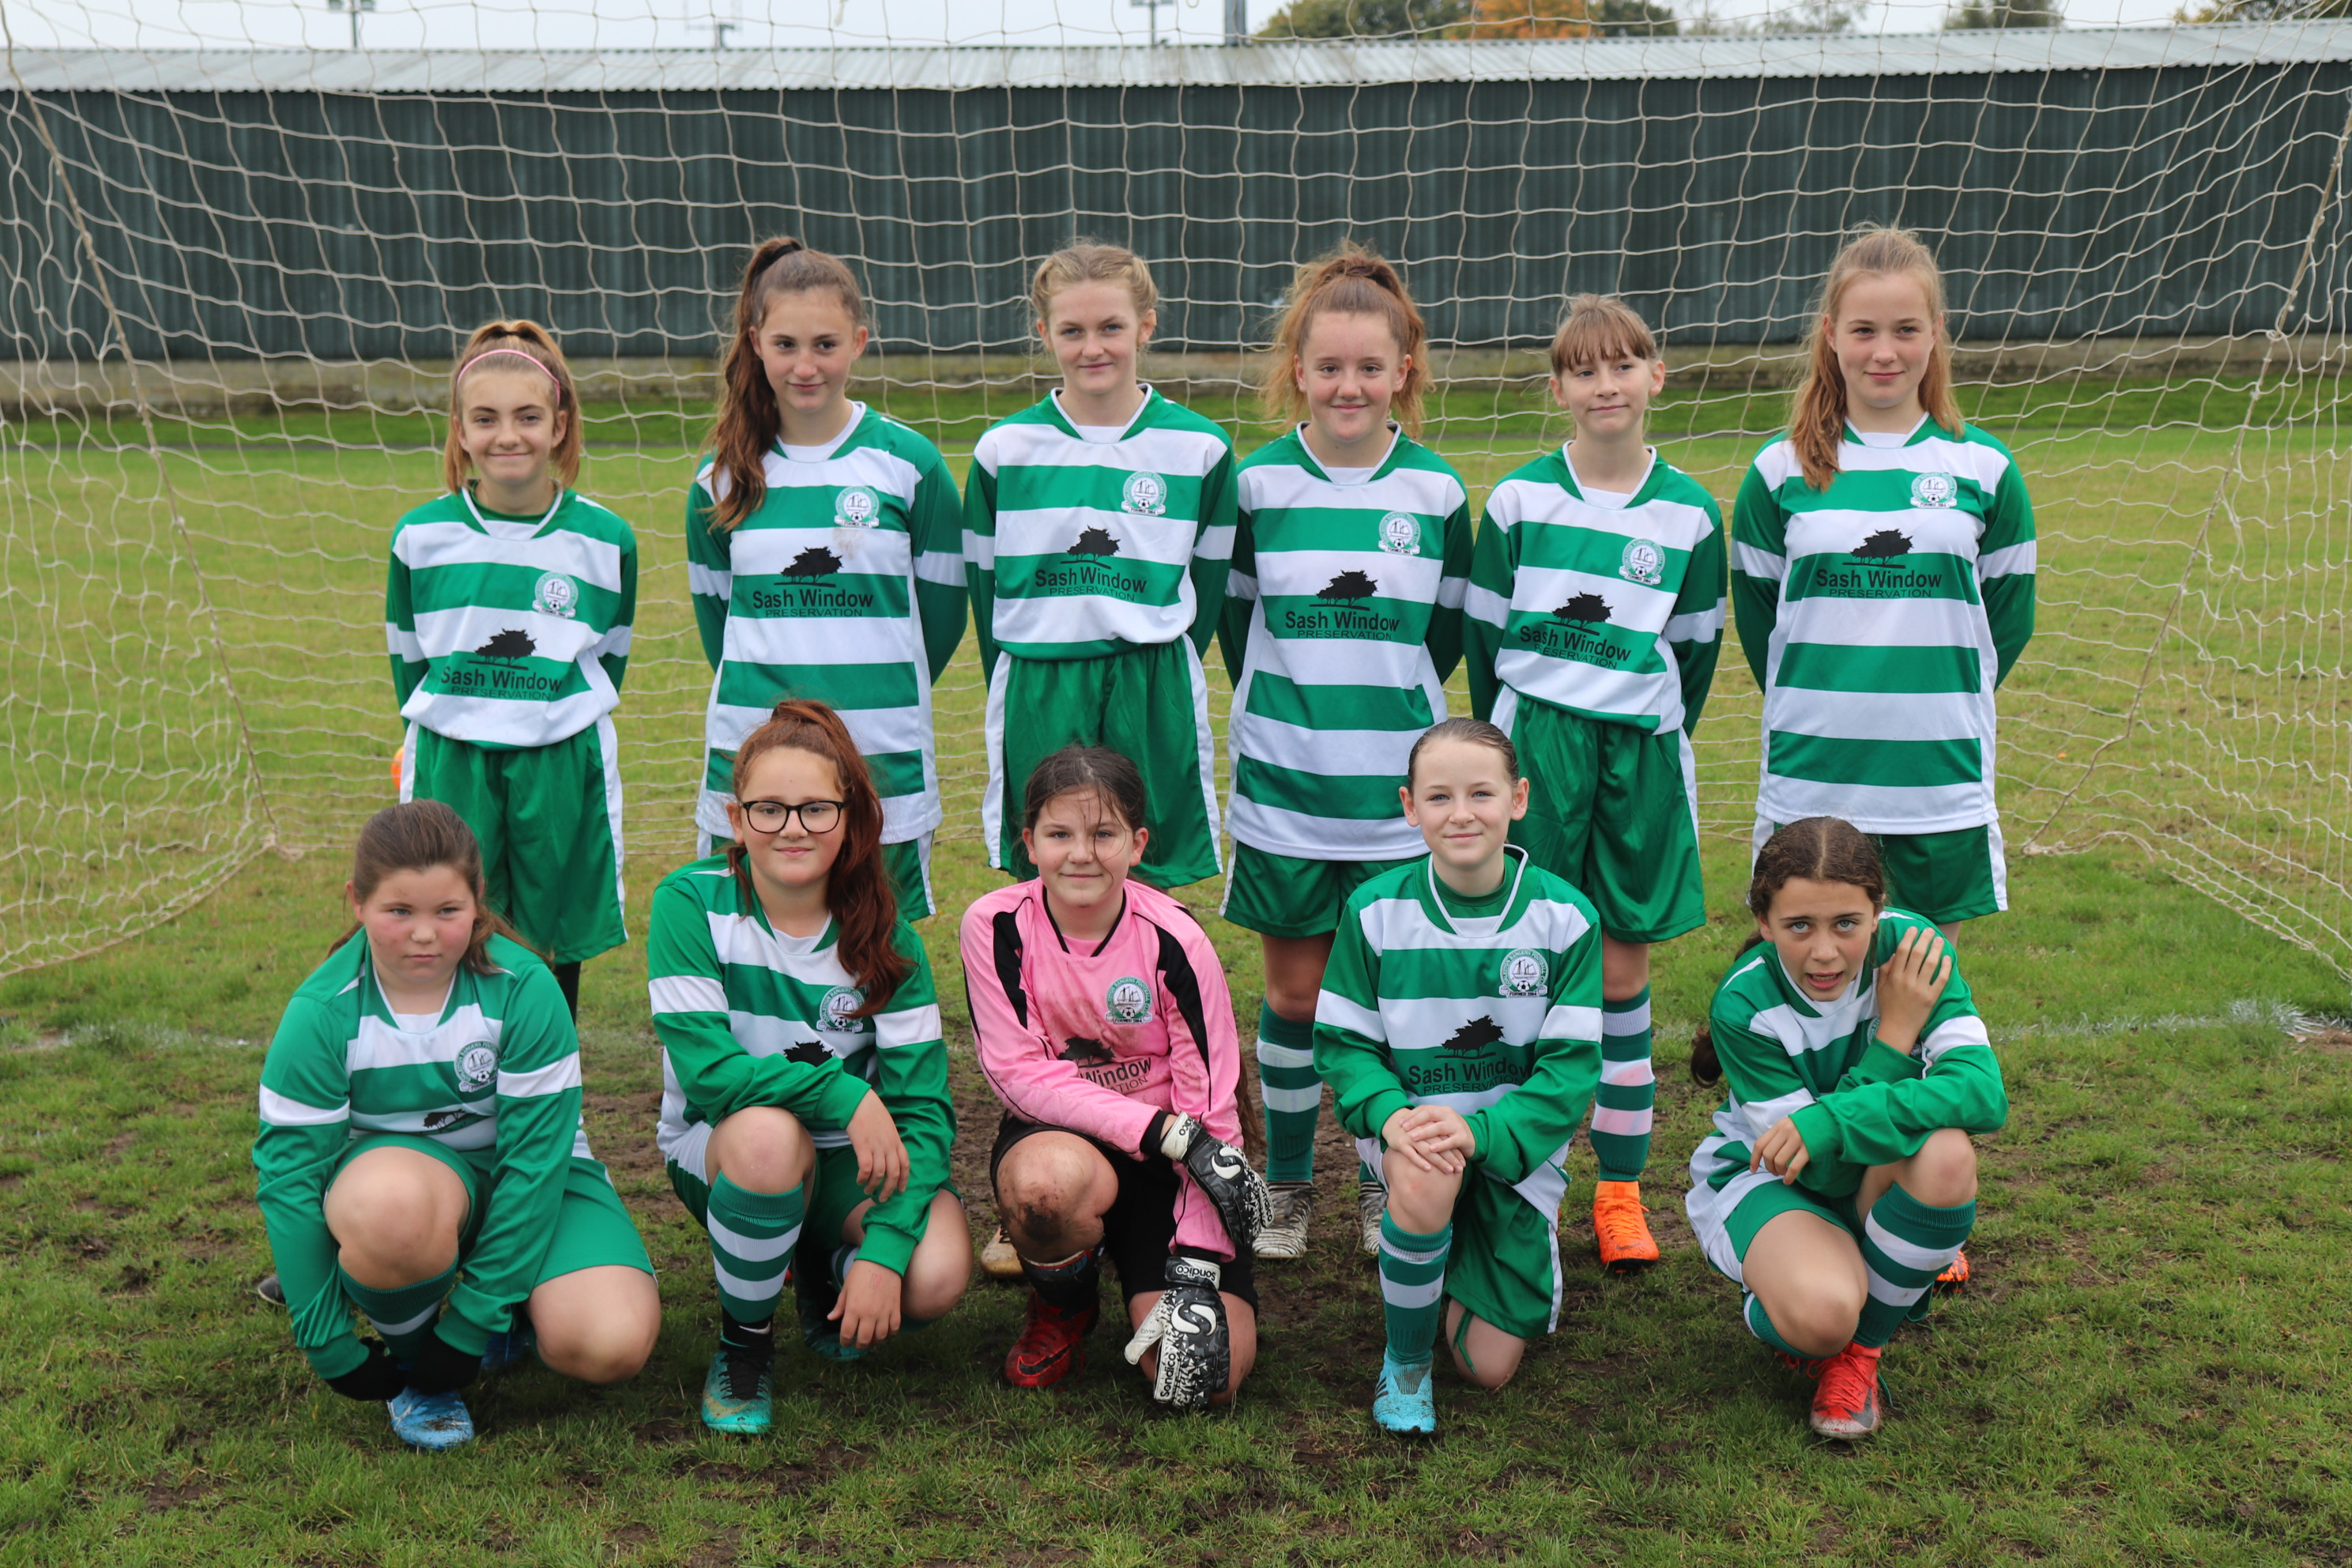 U13 Girls Eagles team